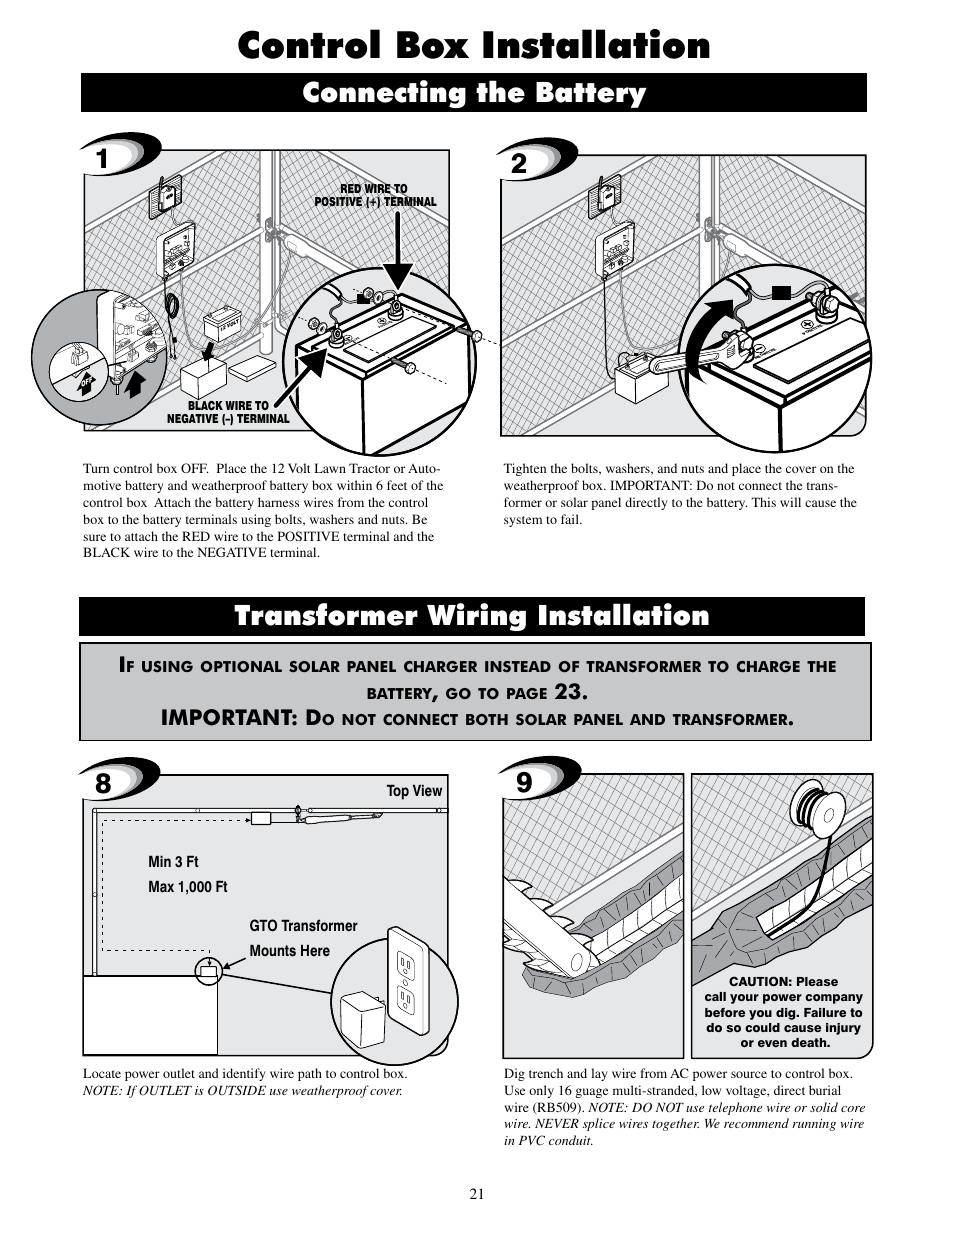 Control Box Installation Transformer Wiring Diagram Battery Charger Connecting The Mighty Mule Mm600et Pro User Manual Page 24 42